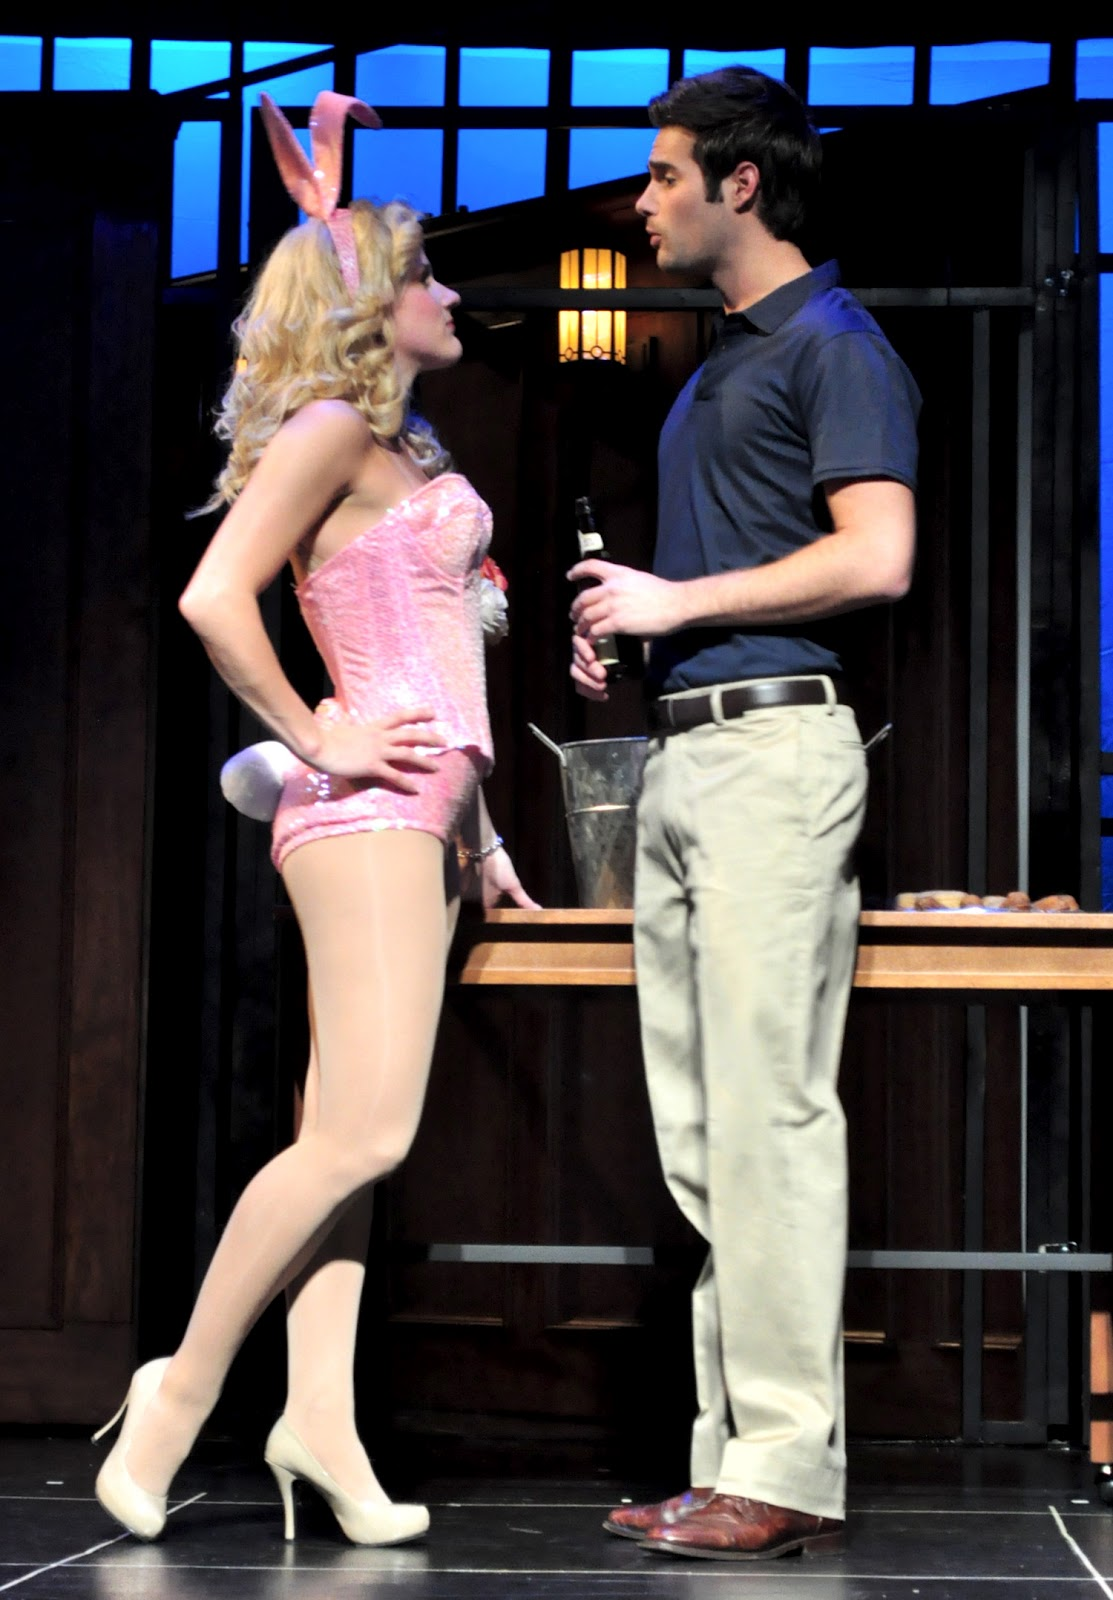 a critique of legally blonde a musical of laurence okeefe and nell benjamin Windy city times news archive - theater review legally blonde: the musical playwrights: heather hach, laurence o'keefe and nell benjamin at: ford center/oriental theatre, 24 w randolph.